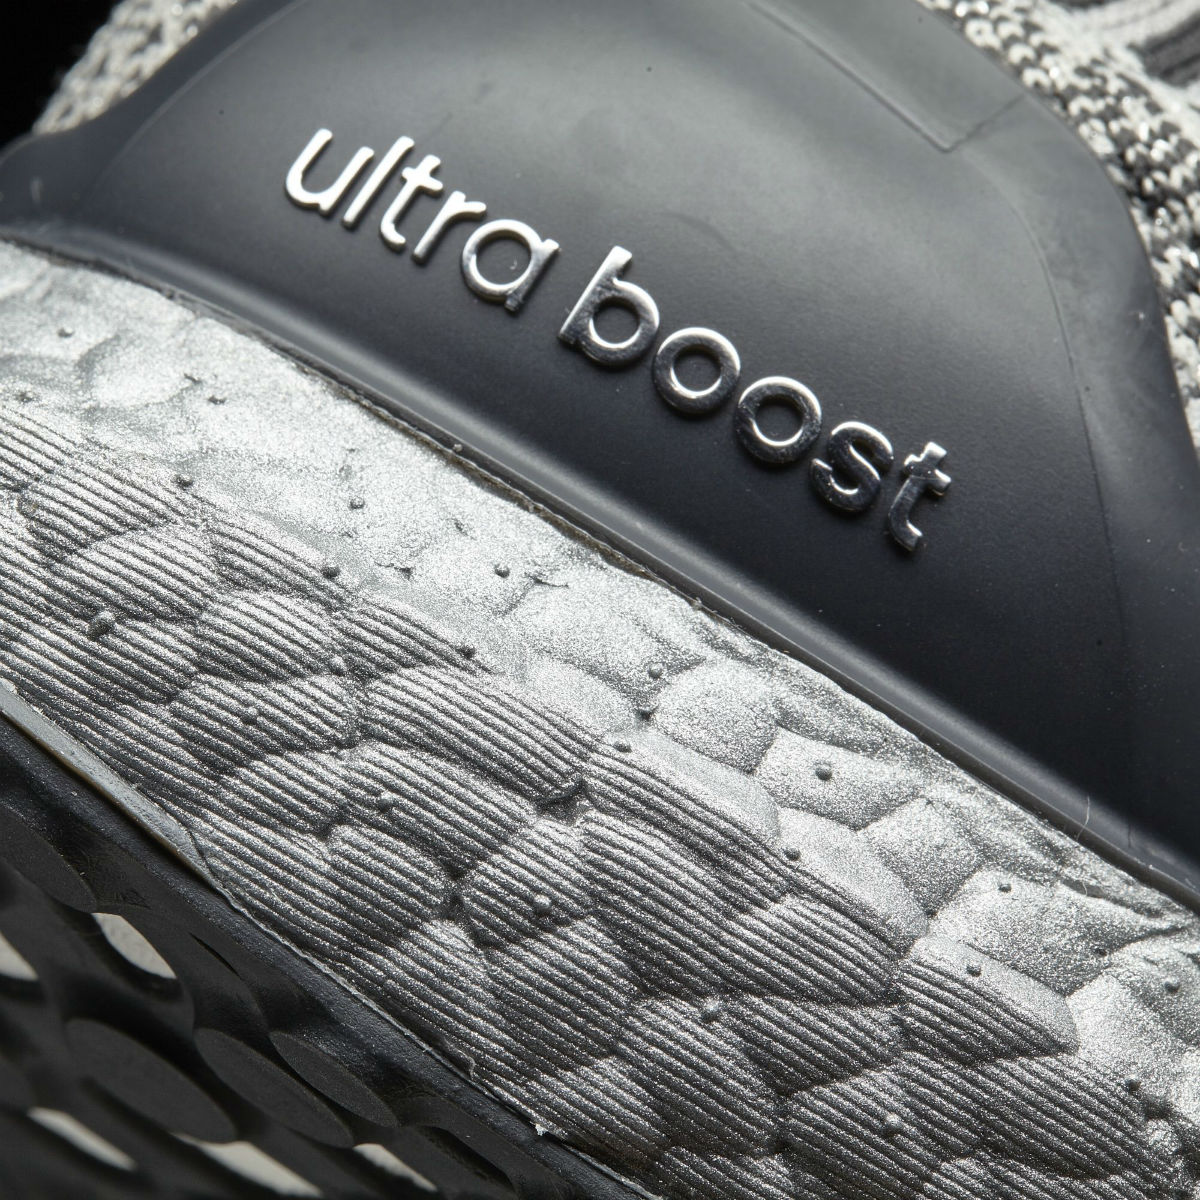 sports shoes 5579c 9f342 Adidas Ultra Boost Uncaged Metallic Silver BA7997 | Sole ...